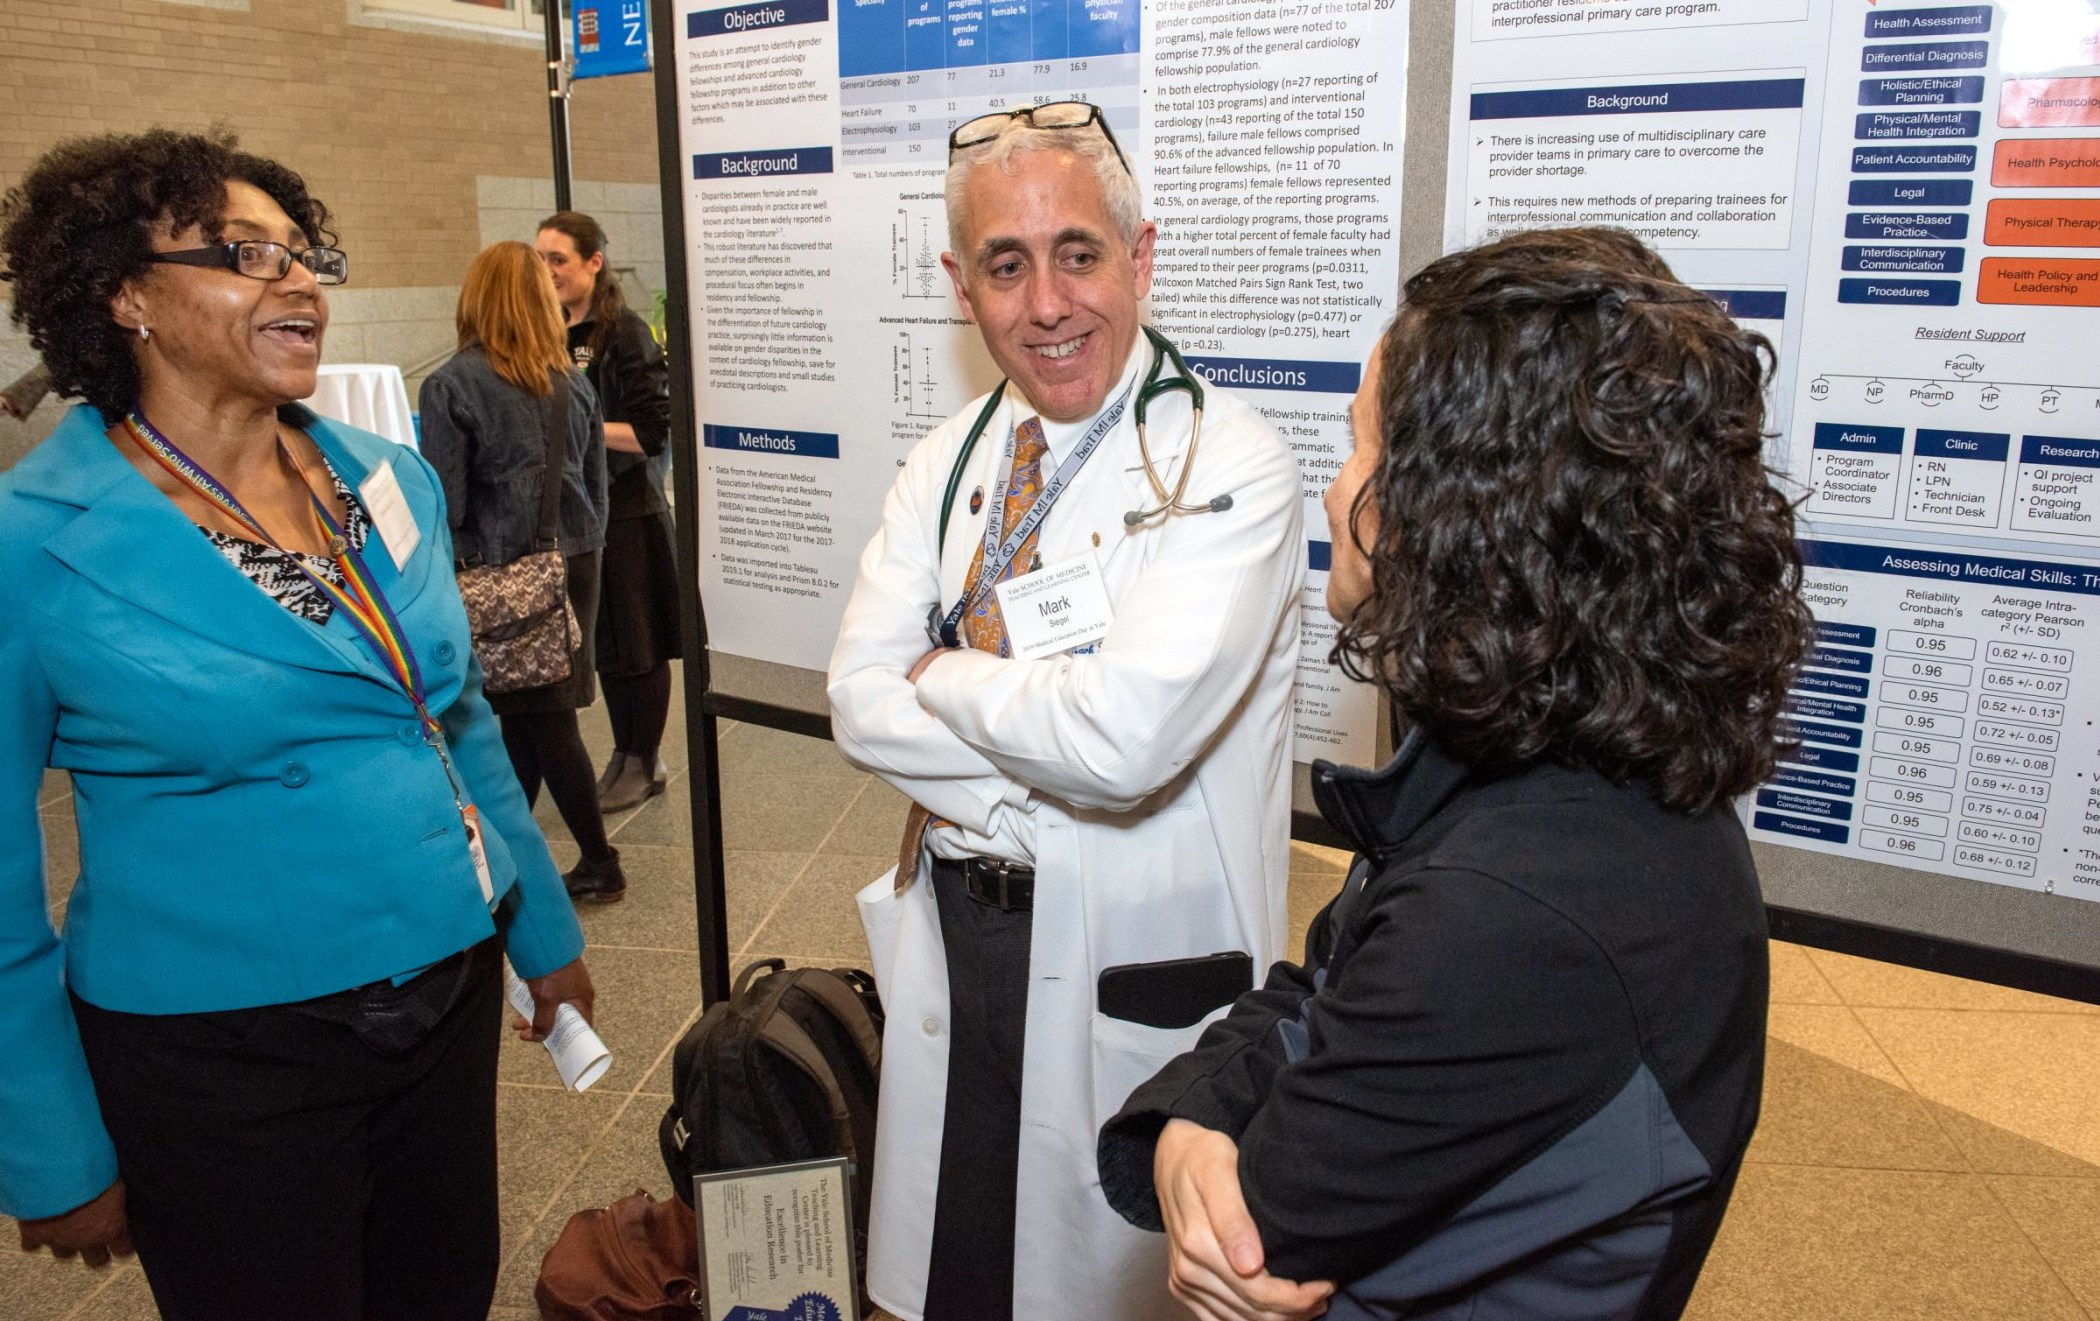 Three Med Ed Day attendees discuss a poster